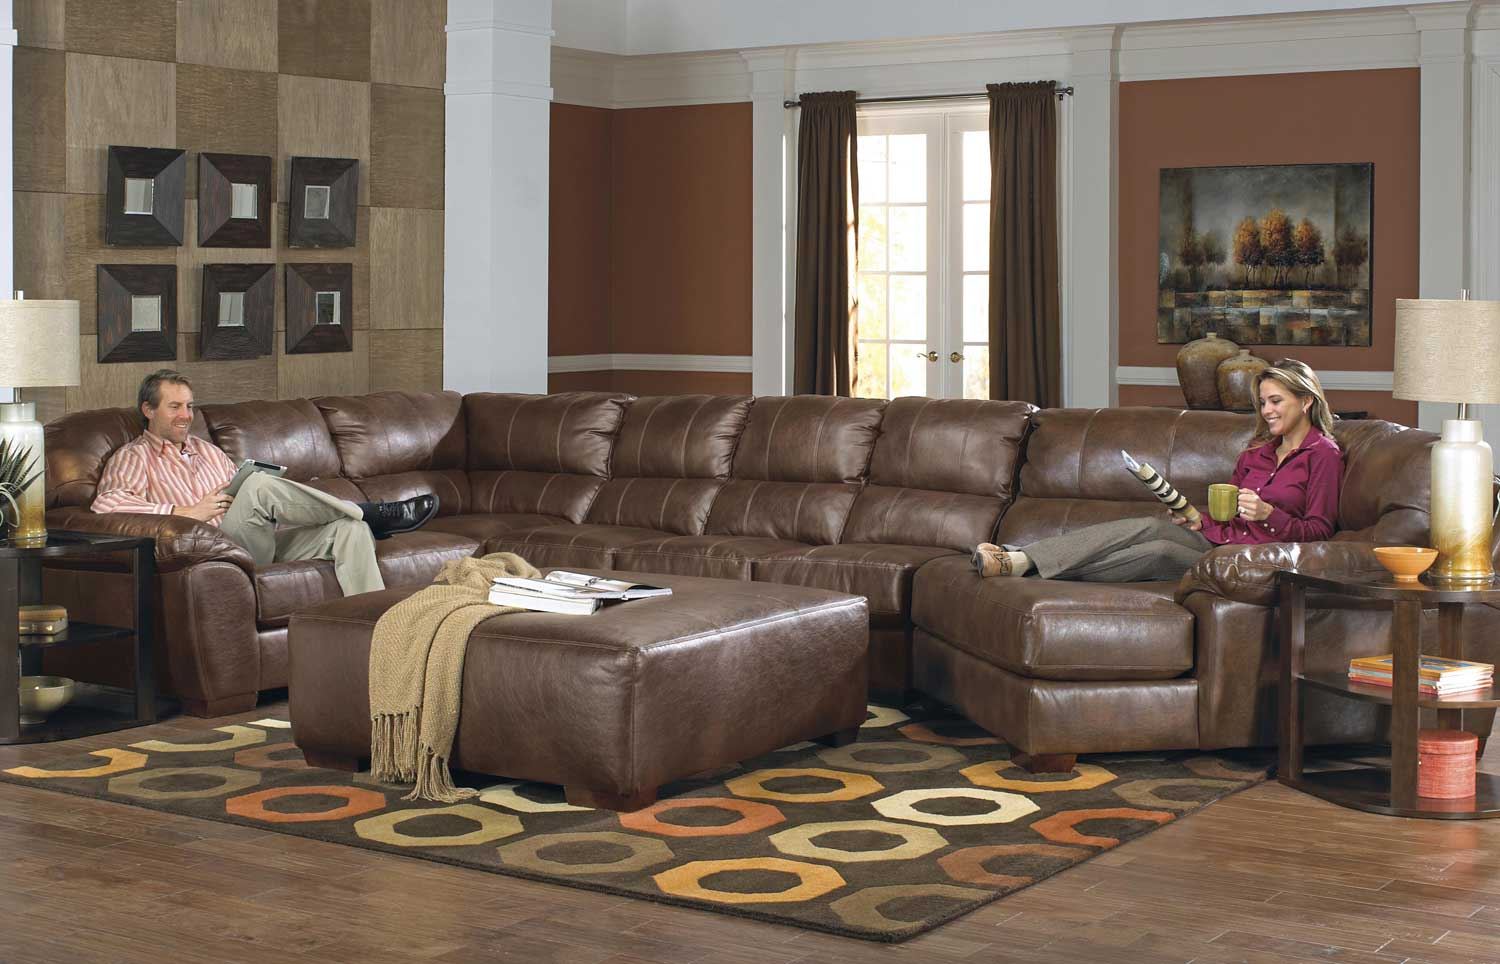 Jackson Lawson Sectional Sofa Set B Chestnut Jf 4243 Sect Set B Chestnut At